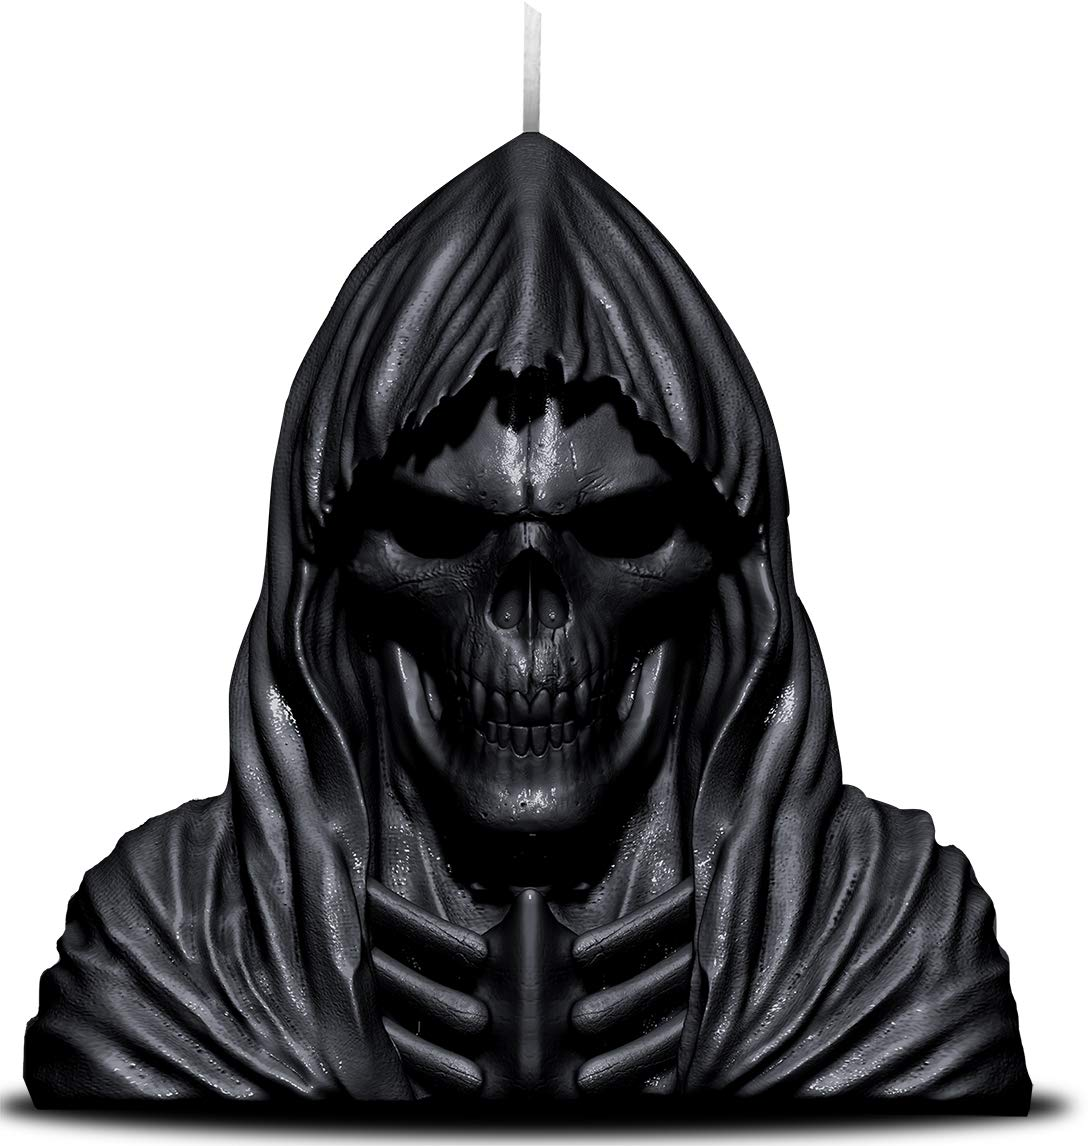 Spiral - Wax Reaper With Skull - Candle with Metal Sculpture Inside